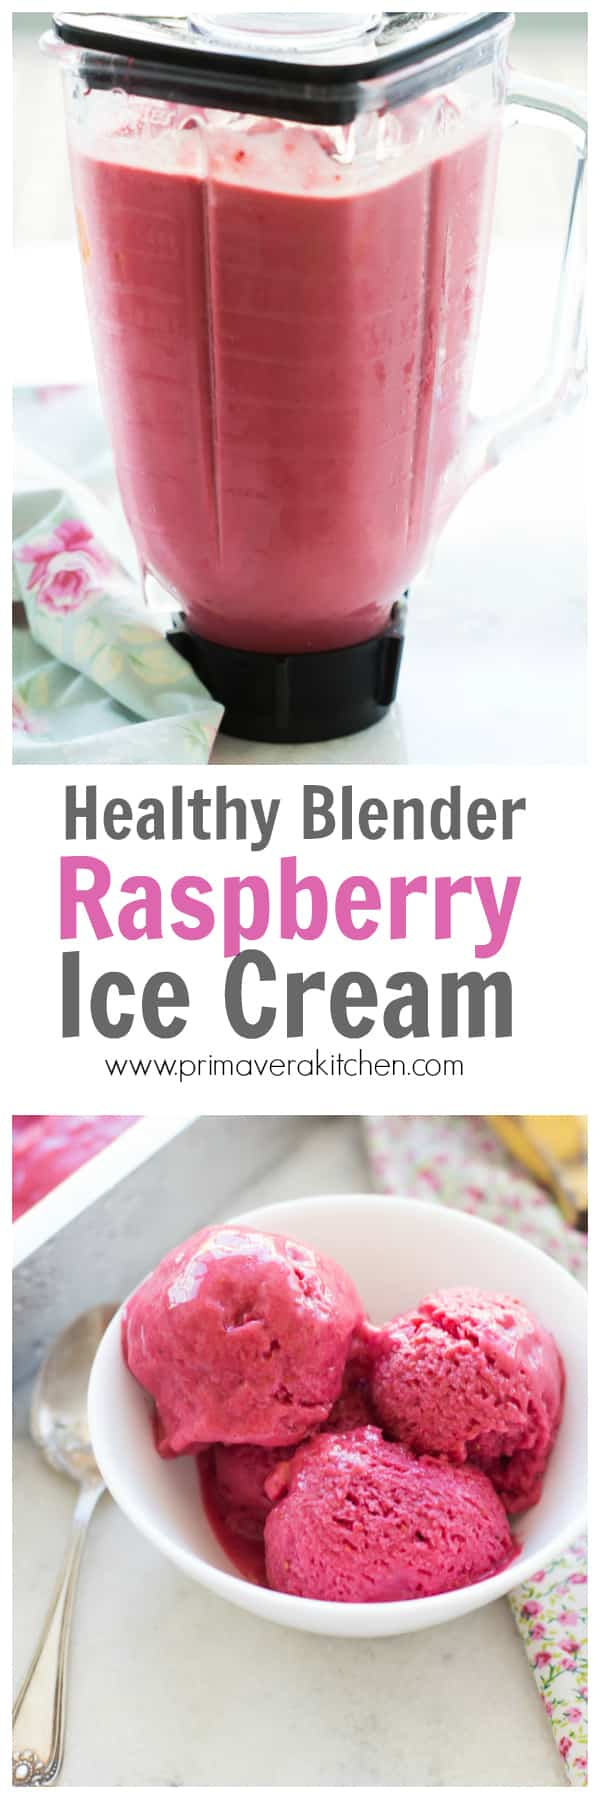 healthy blender raspberry ice cream - primavera kitchen